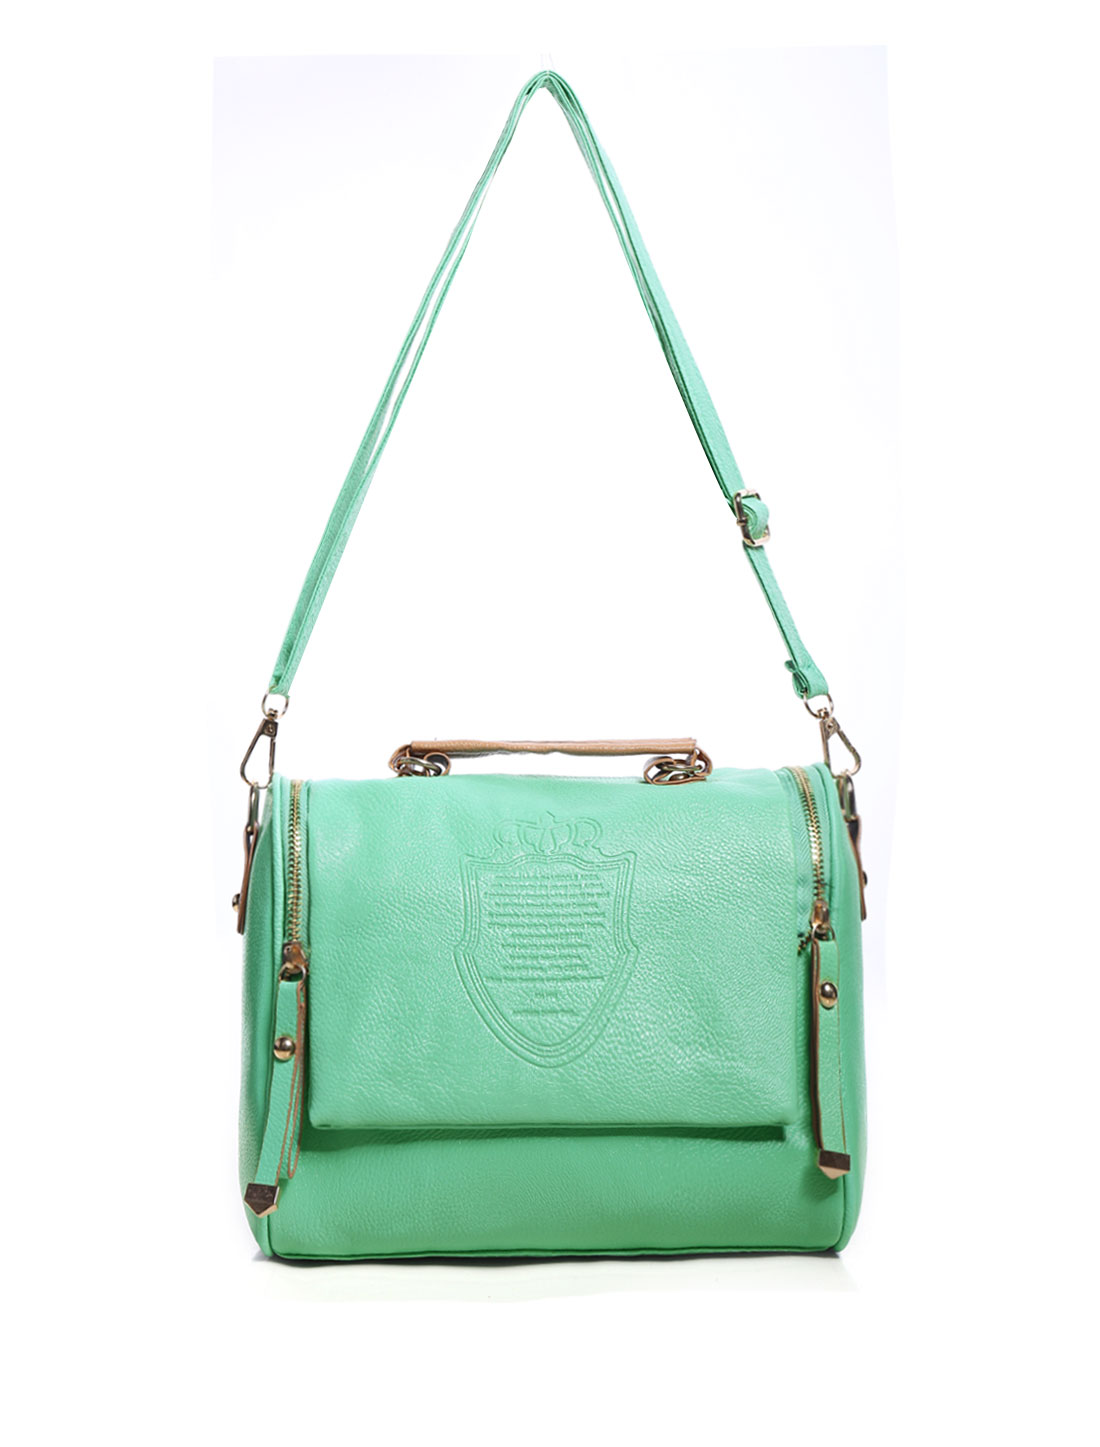 Vintage Style Faux Leather Women Handbag Tote Messenger Shoulder Bag Green